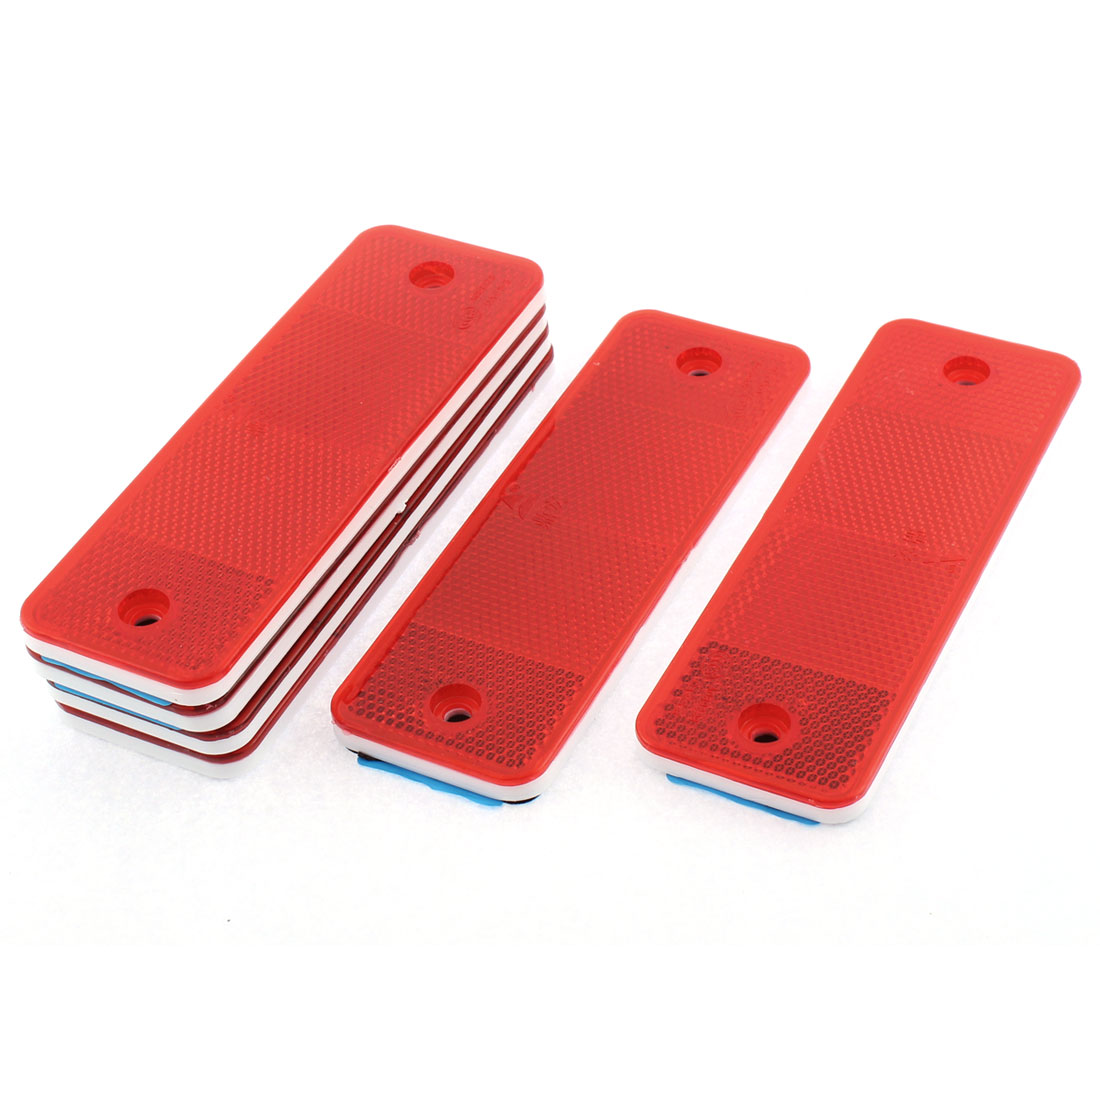 6 Pcs Red Plastic Reflective Warning Plate Stickers For Car Safety